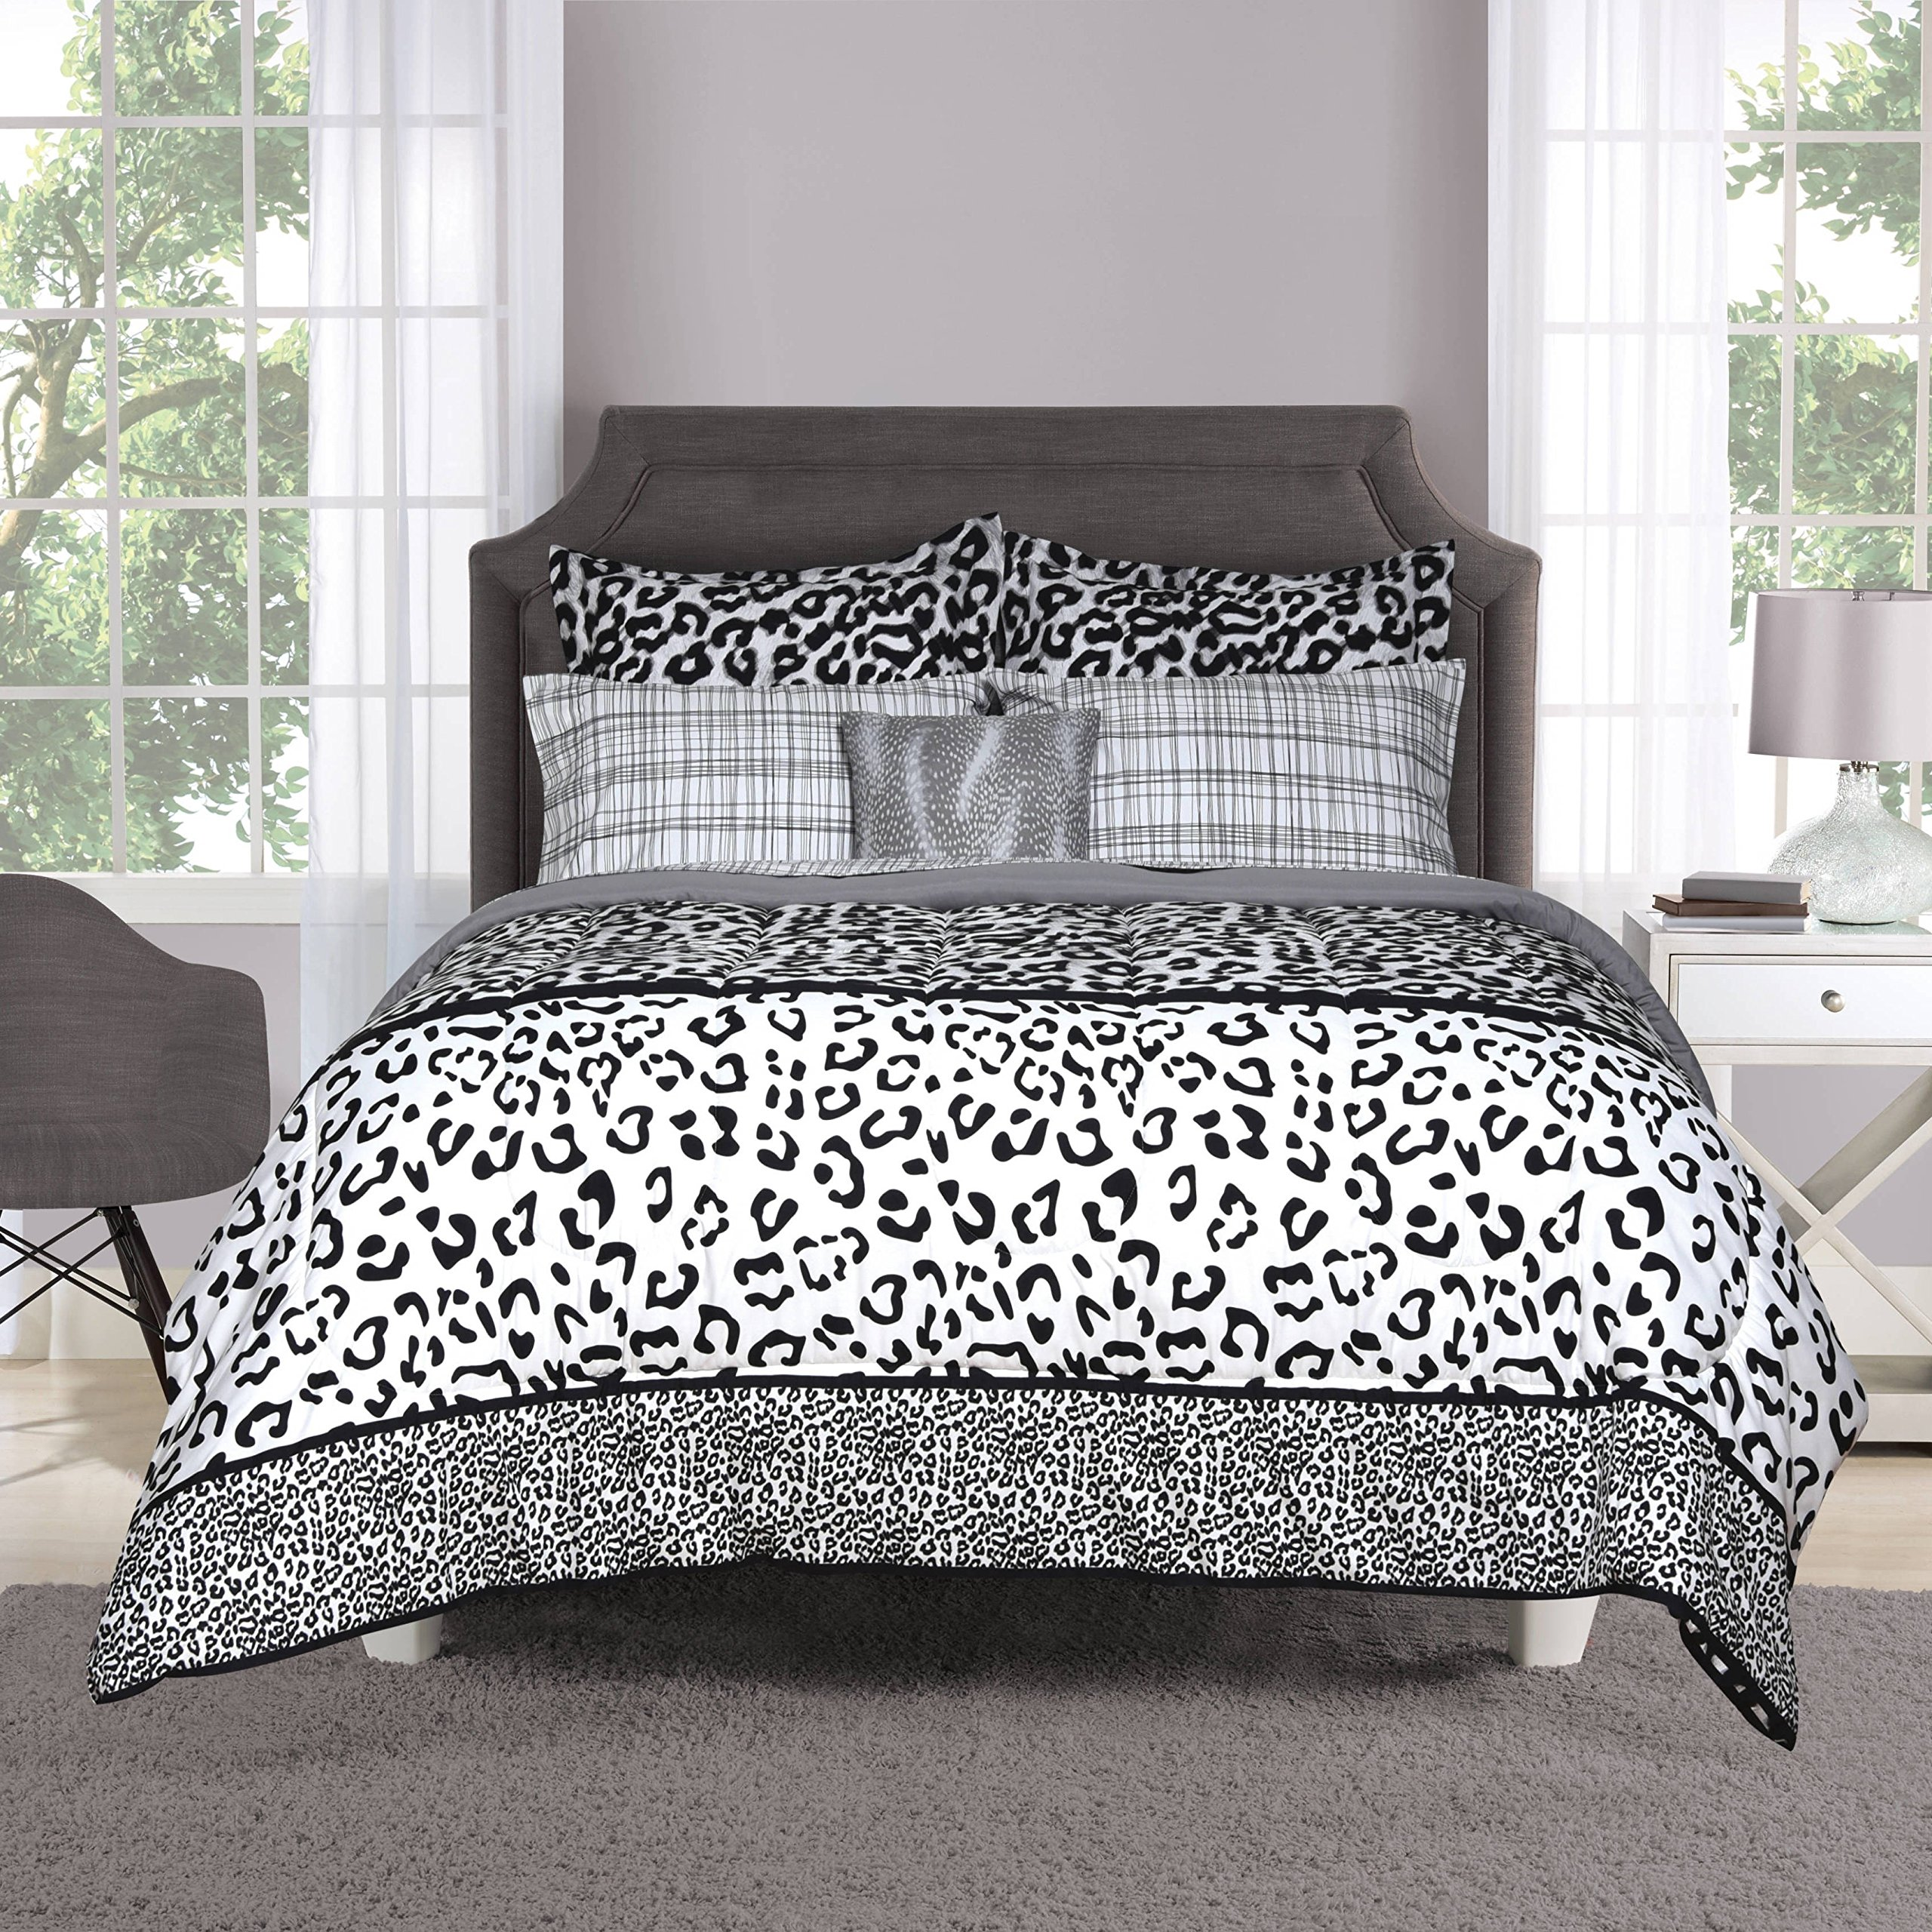 8 Piece Girls Black White Grey Leopard Print Comforter Queen Set, Wild Animal Cat Bedding Jungle Themed Exotic Spotted Pattern Zoo Safair African Tribal All Over Design, Polyester by UN3